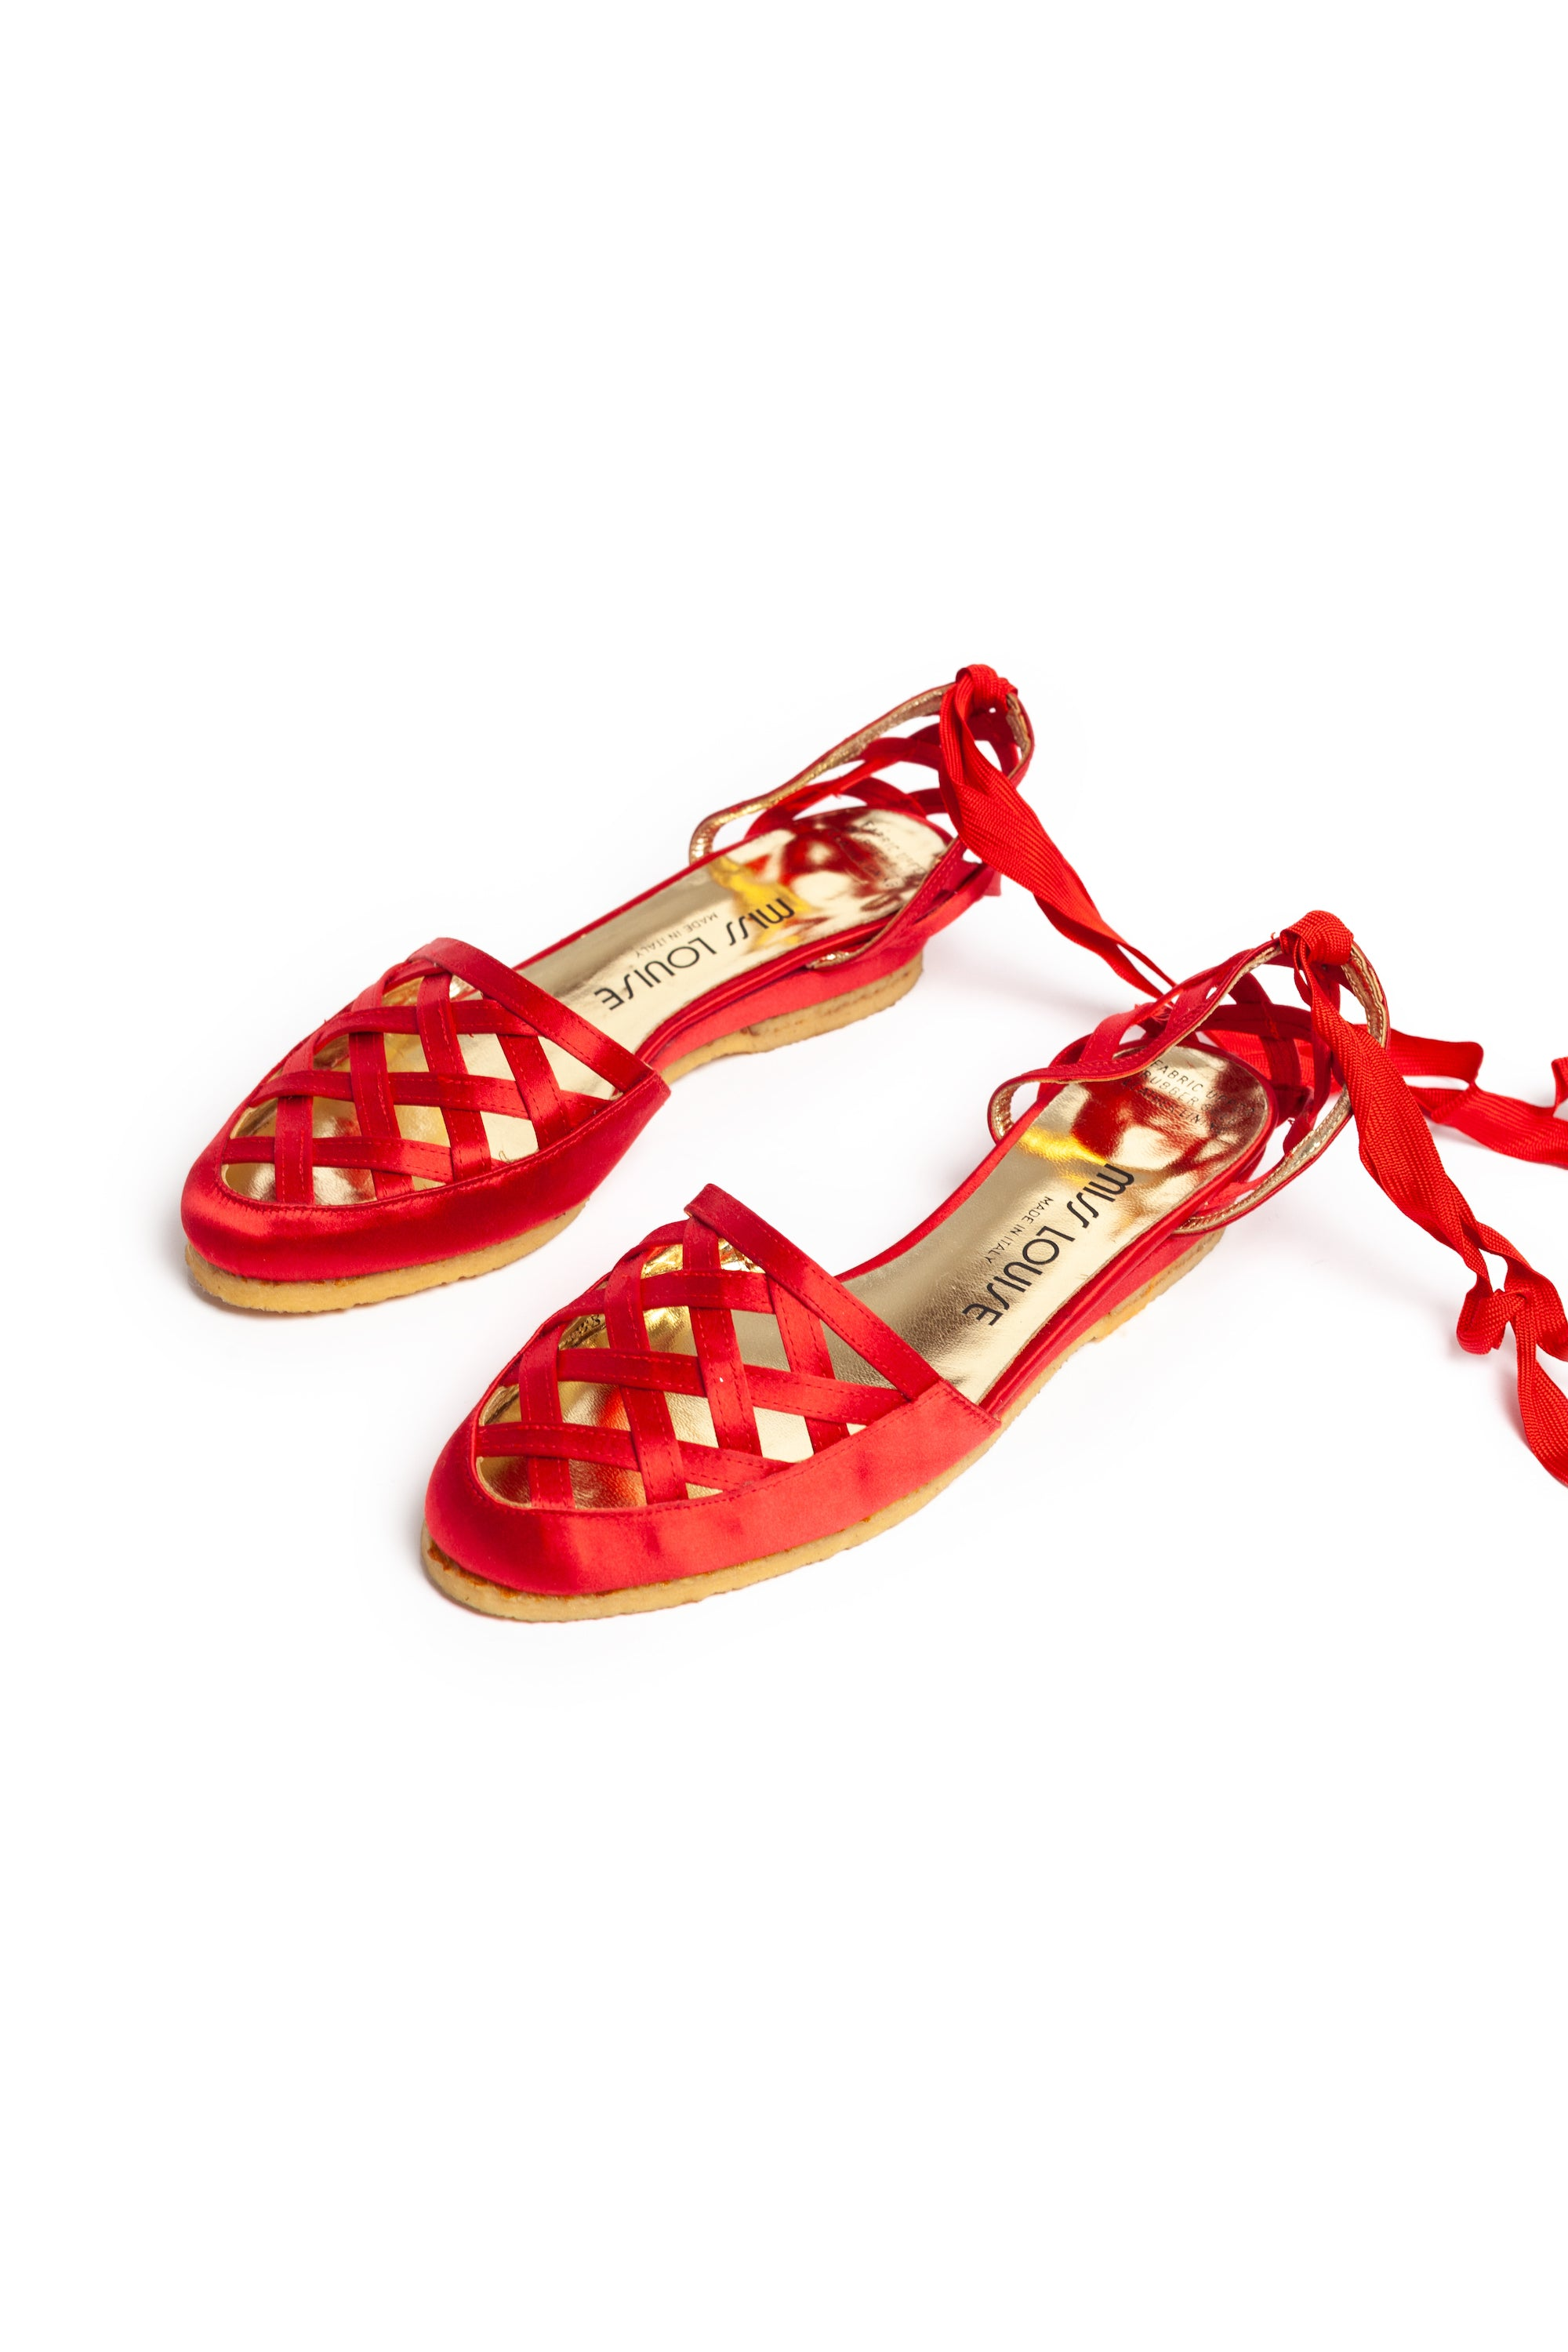 Miss Louise <br> 1980's red satin espadrilles with ankle ties